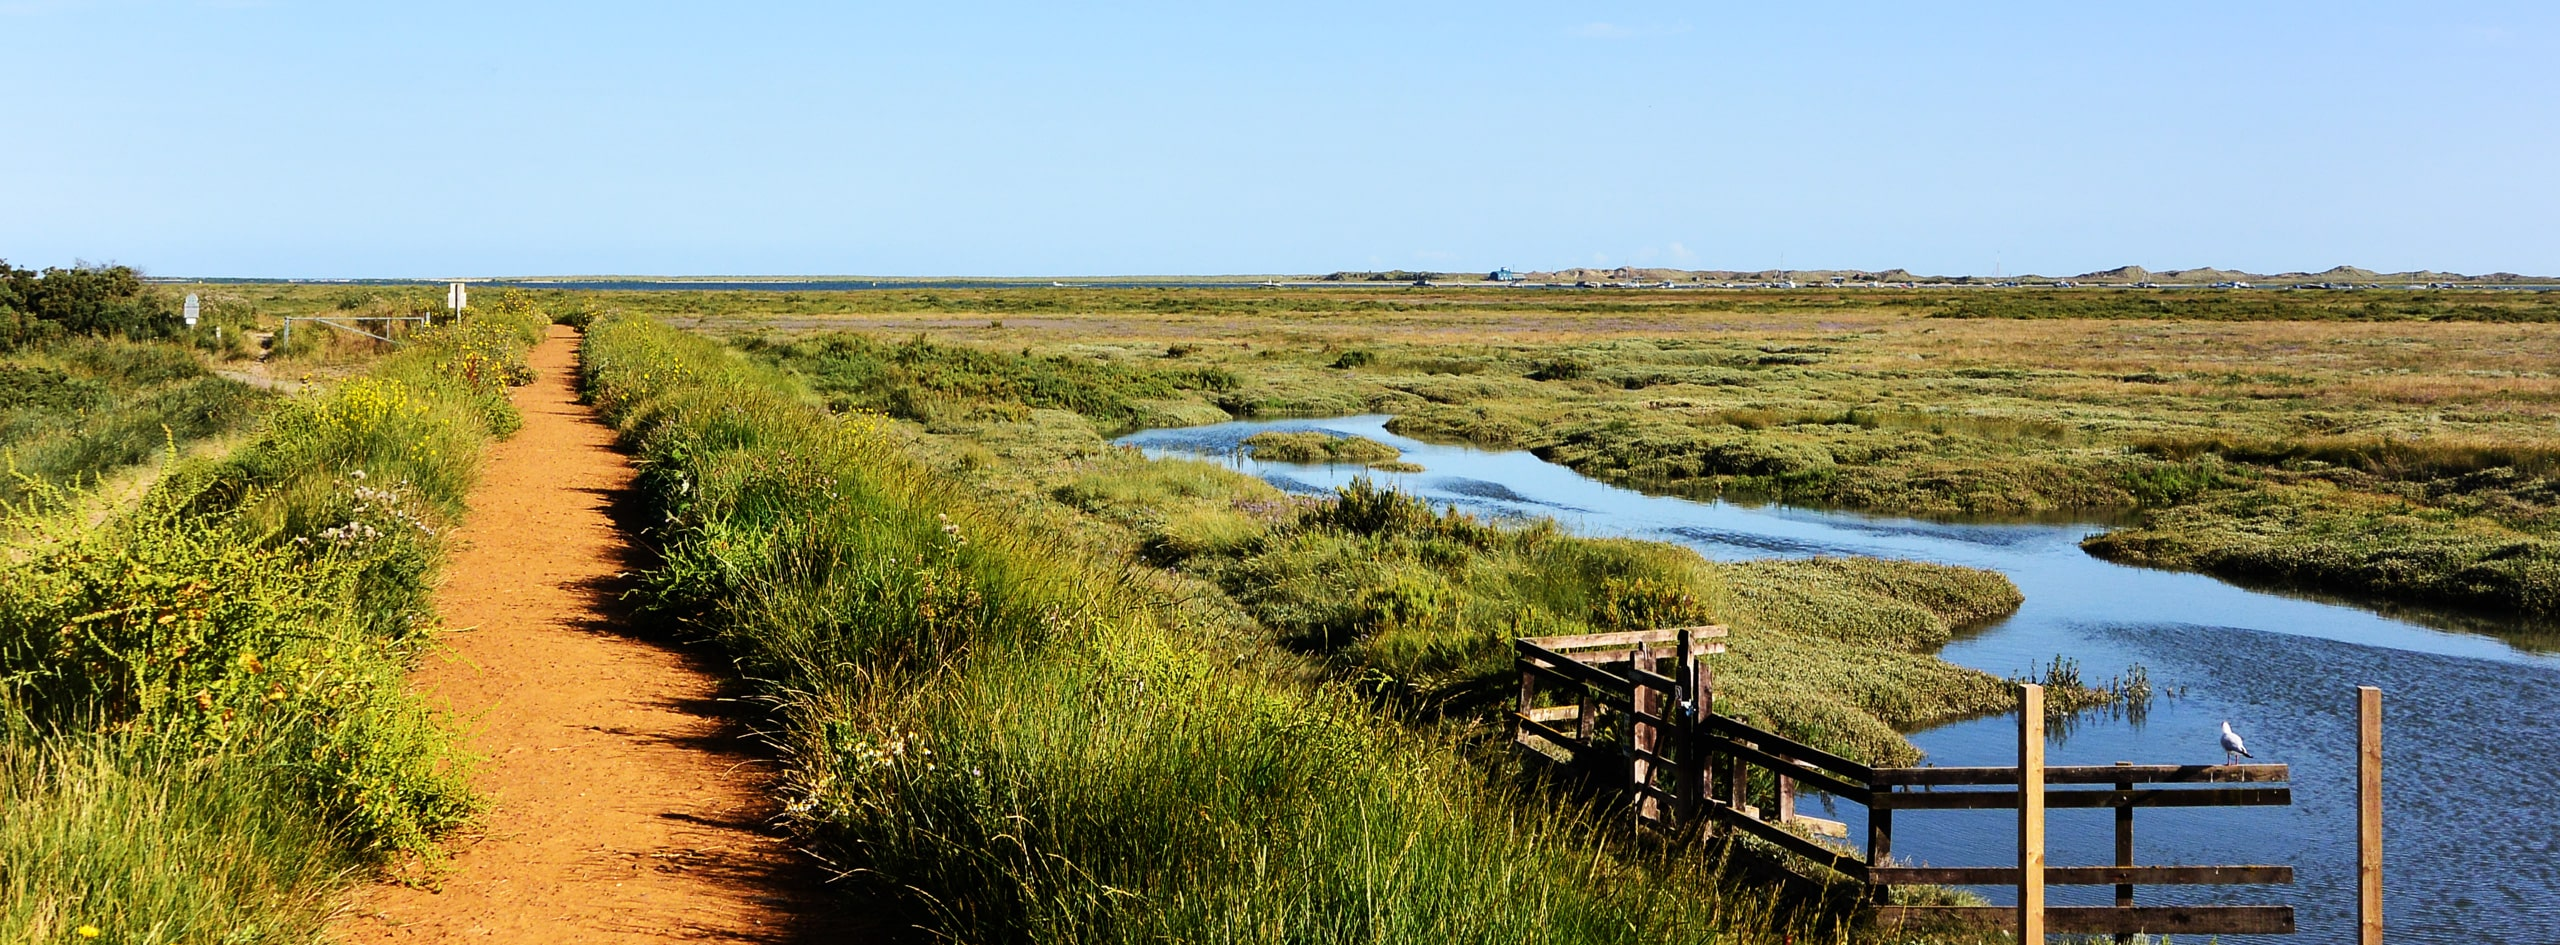 Cley Marshes in North Norfolk